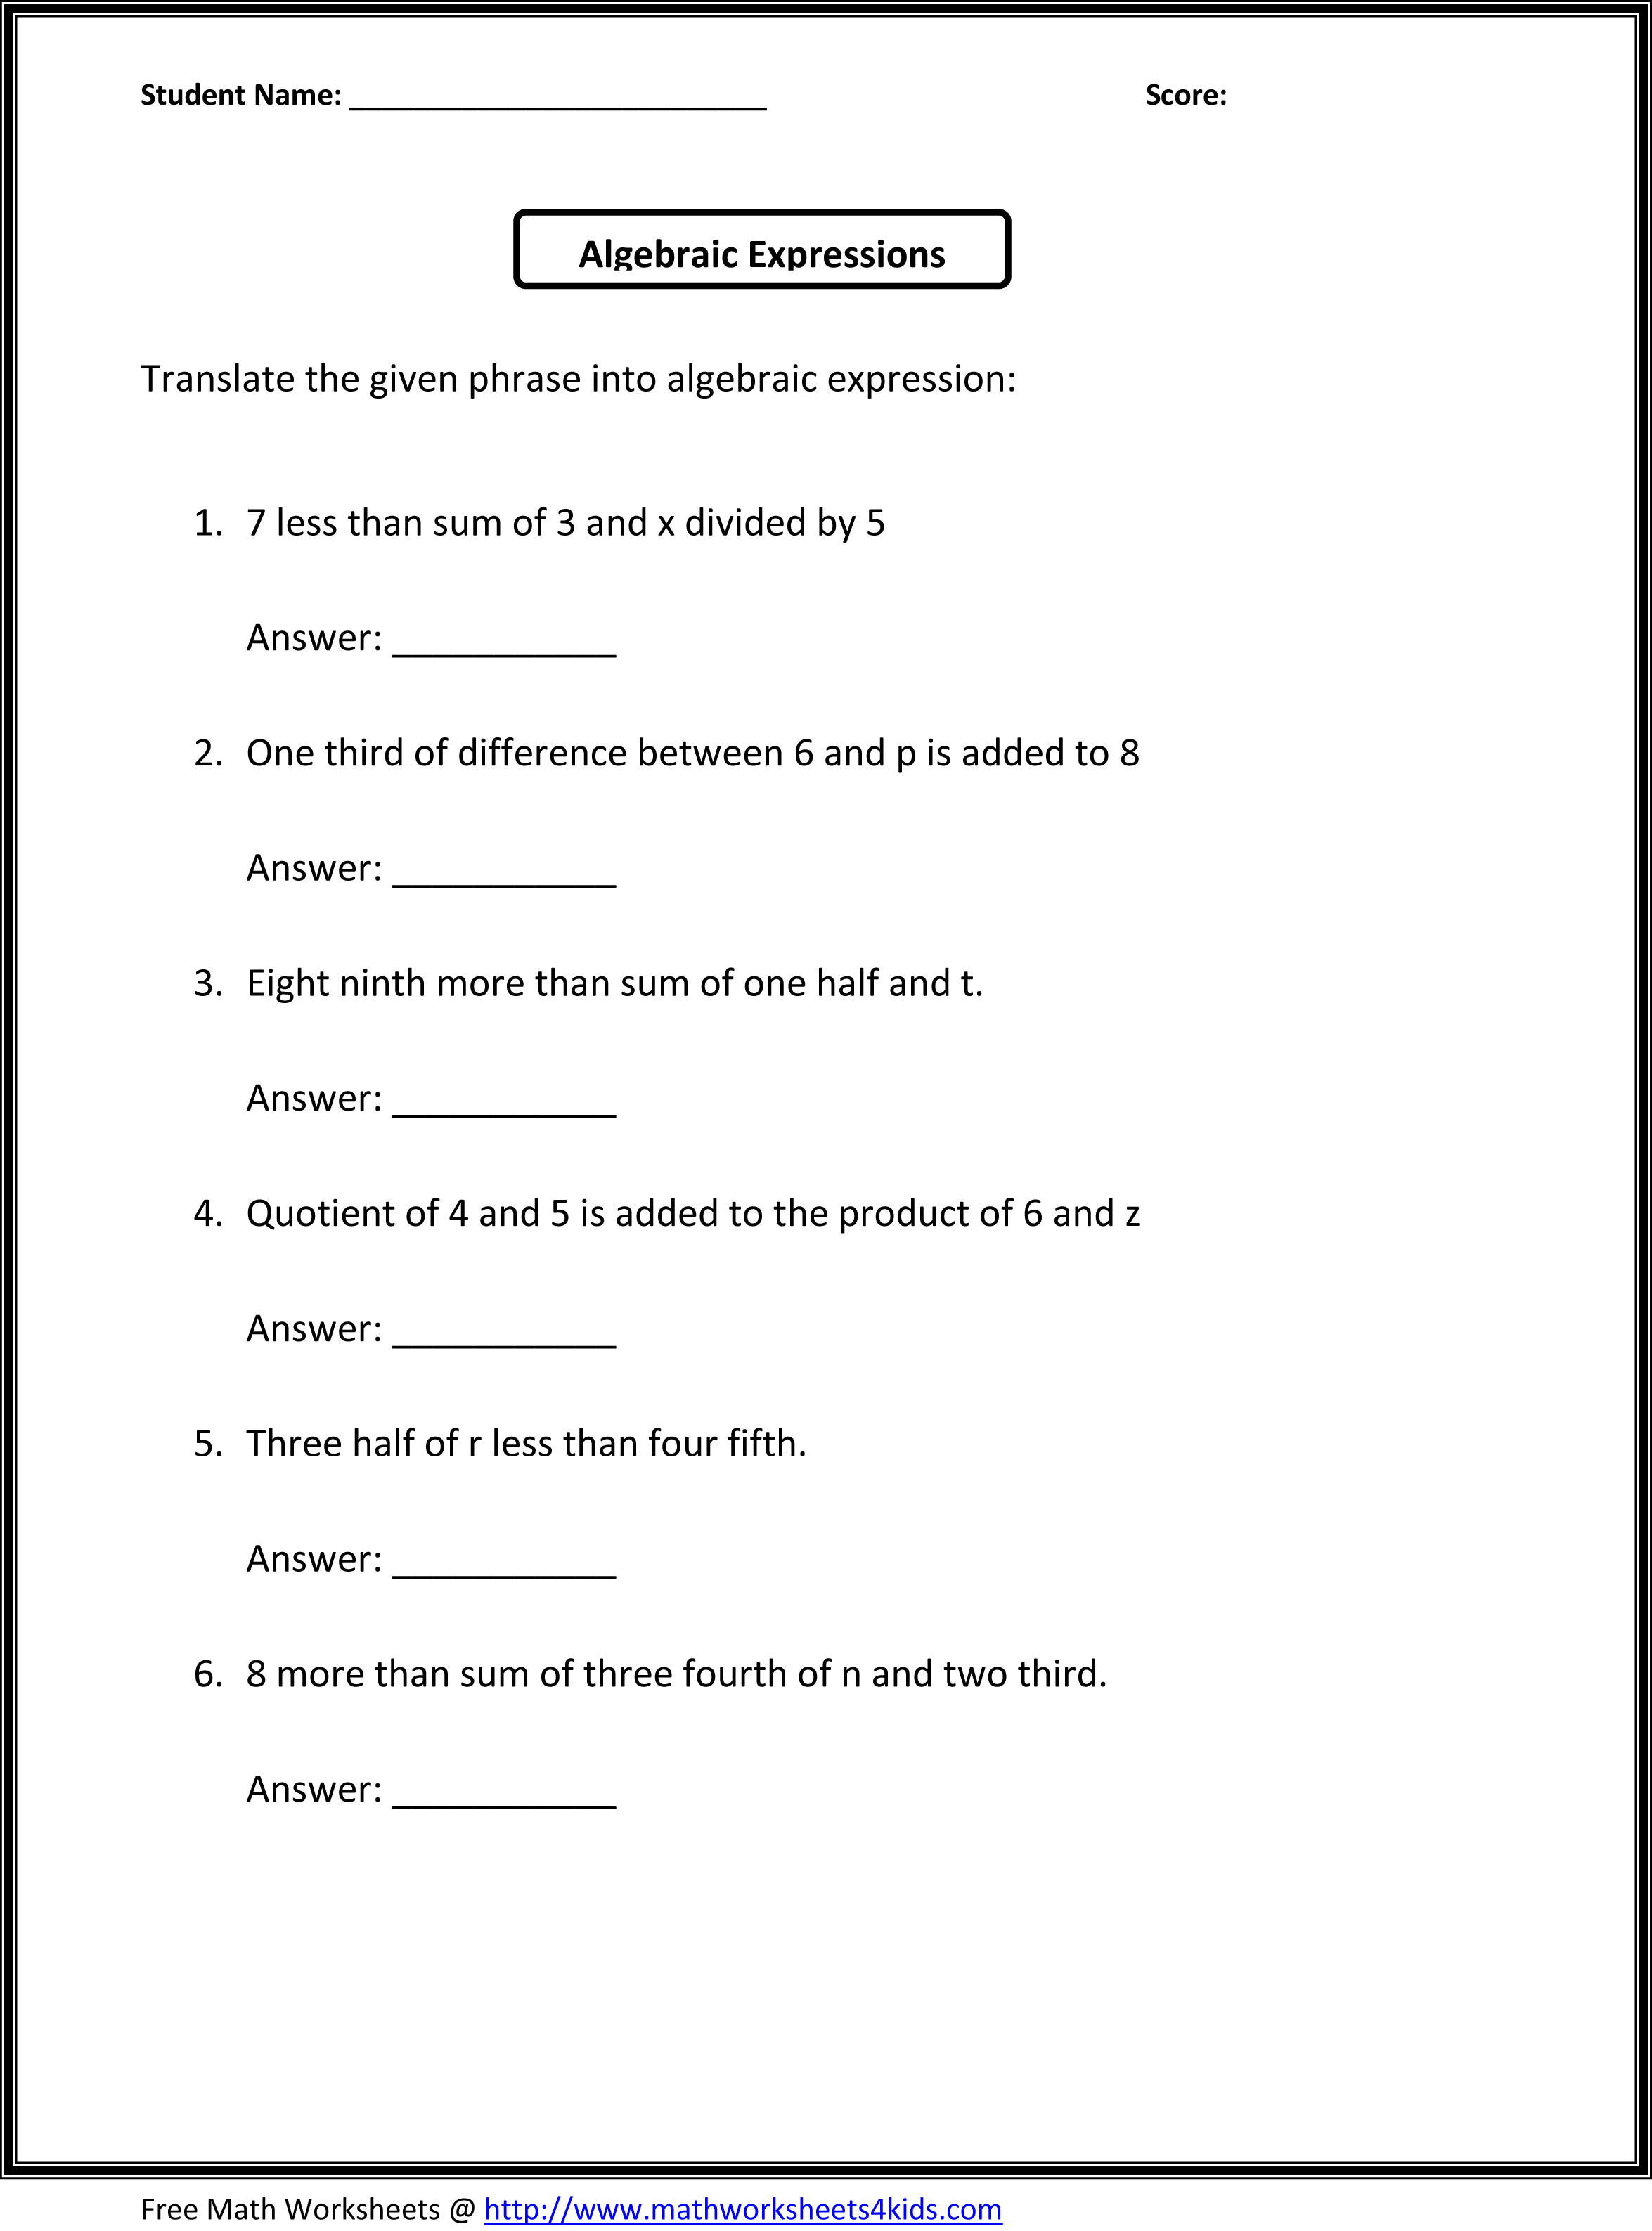 12 Best Images Of Order Of Operations Worksheets With